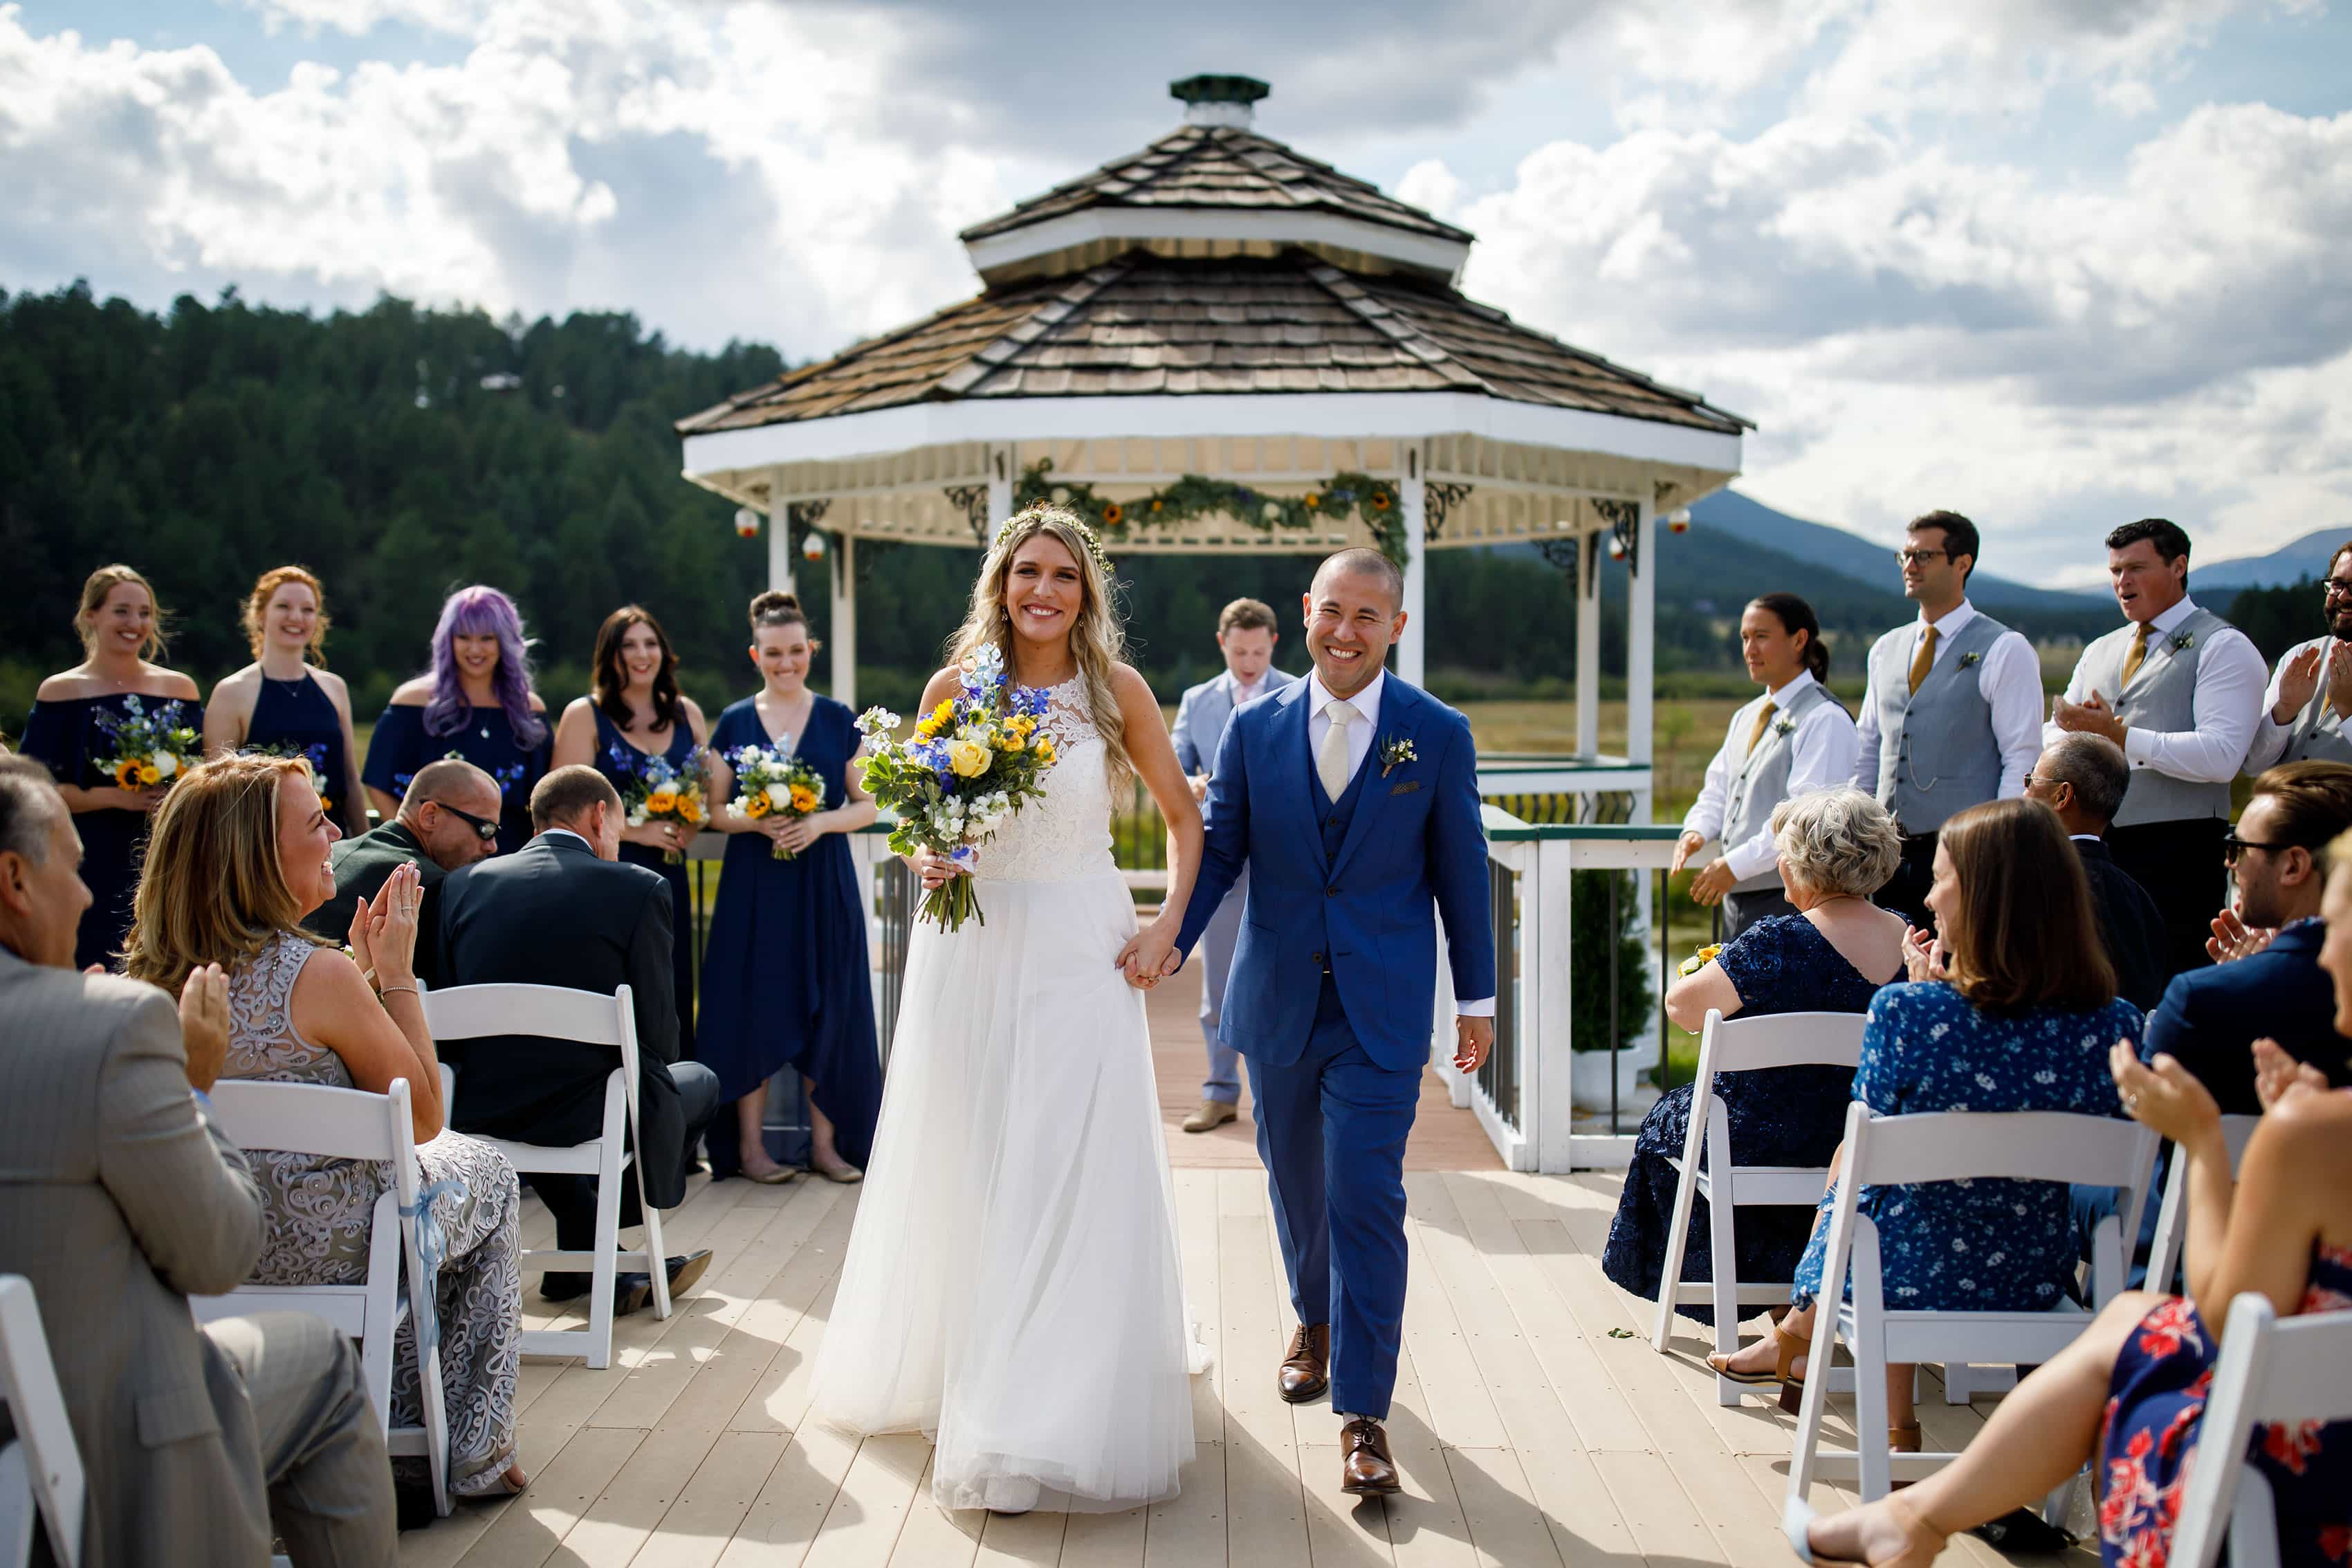 The couple celebrate after their gazebo ceremony at Deer Creek Valley Ranch